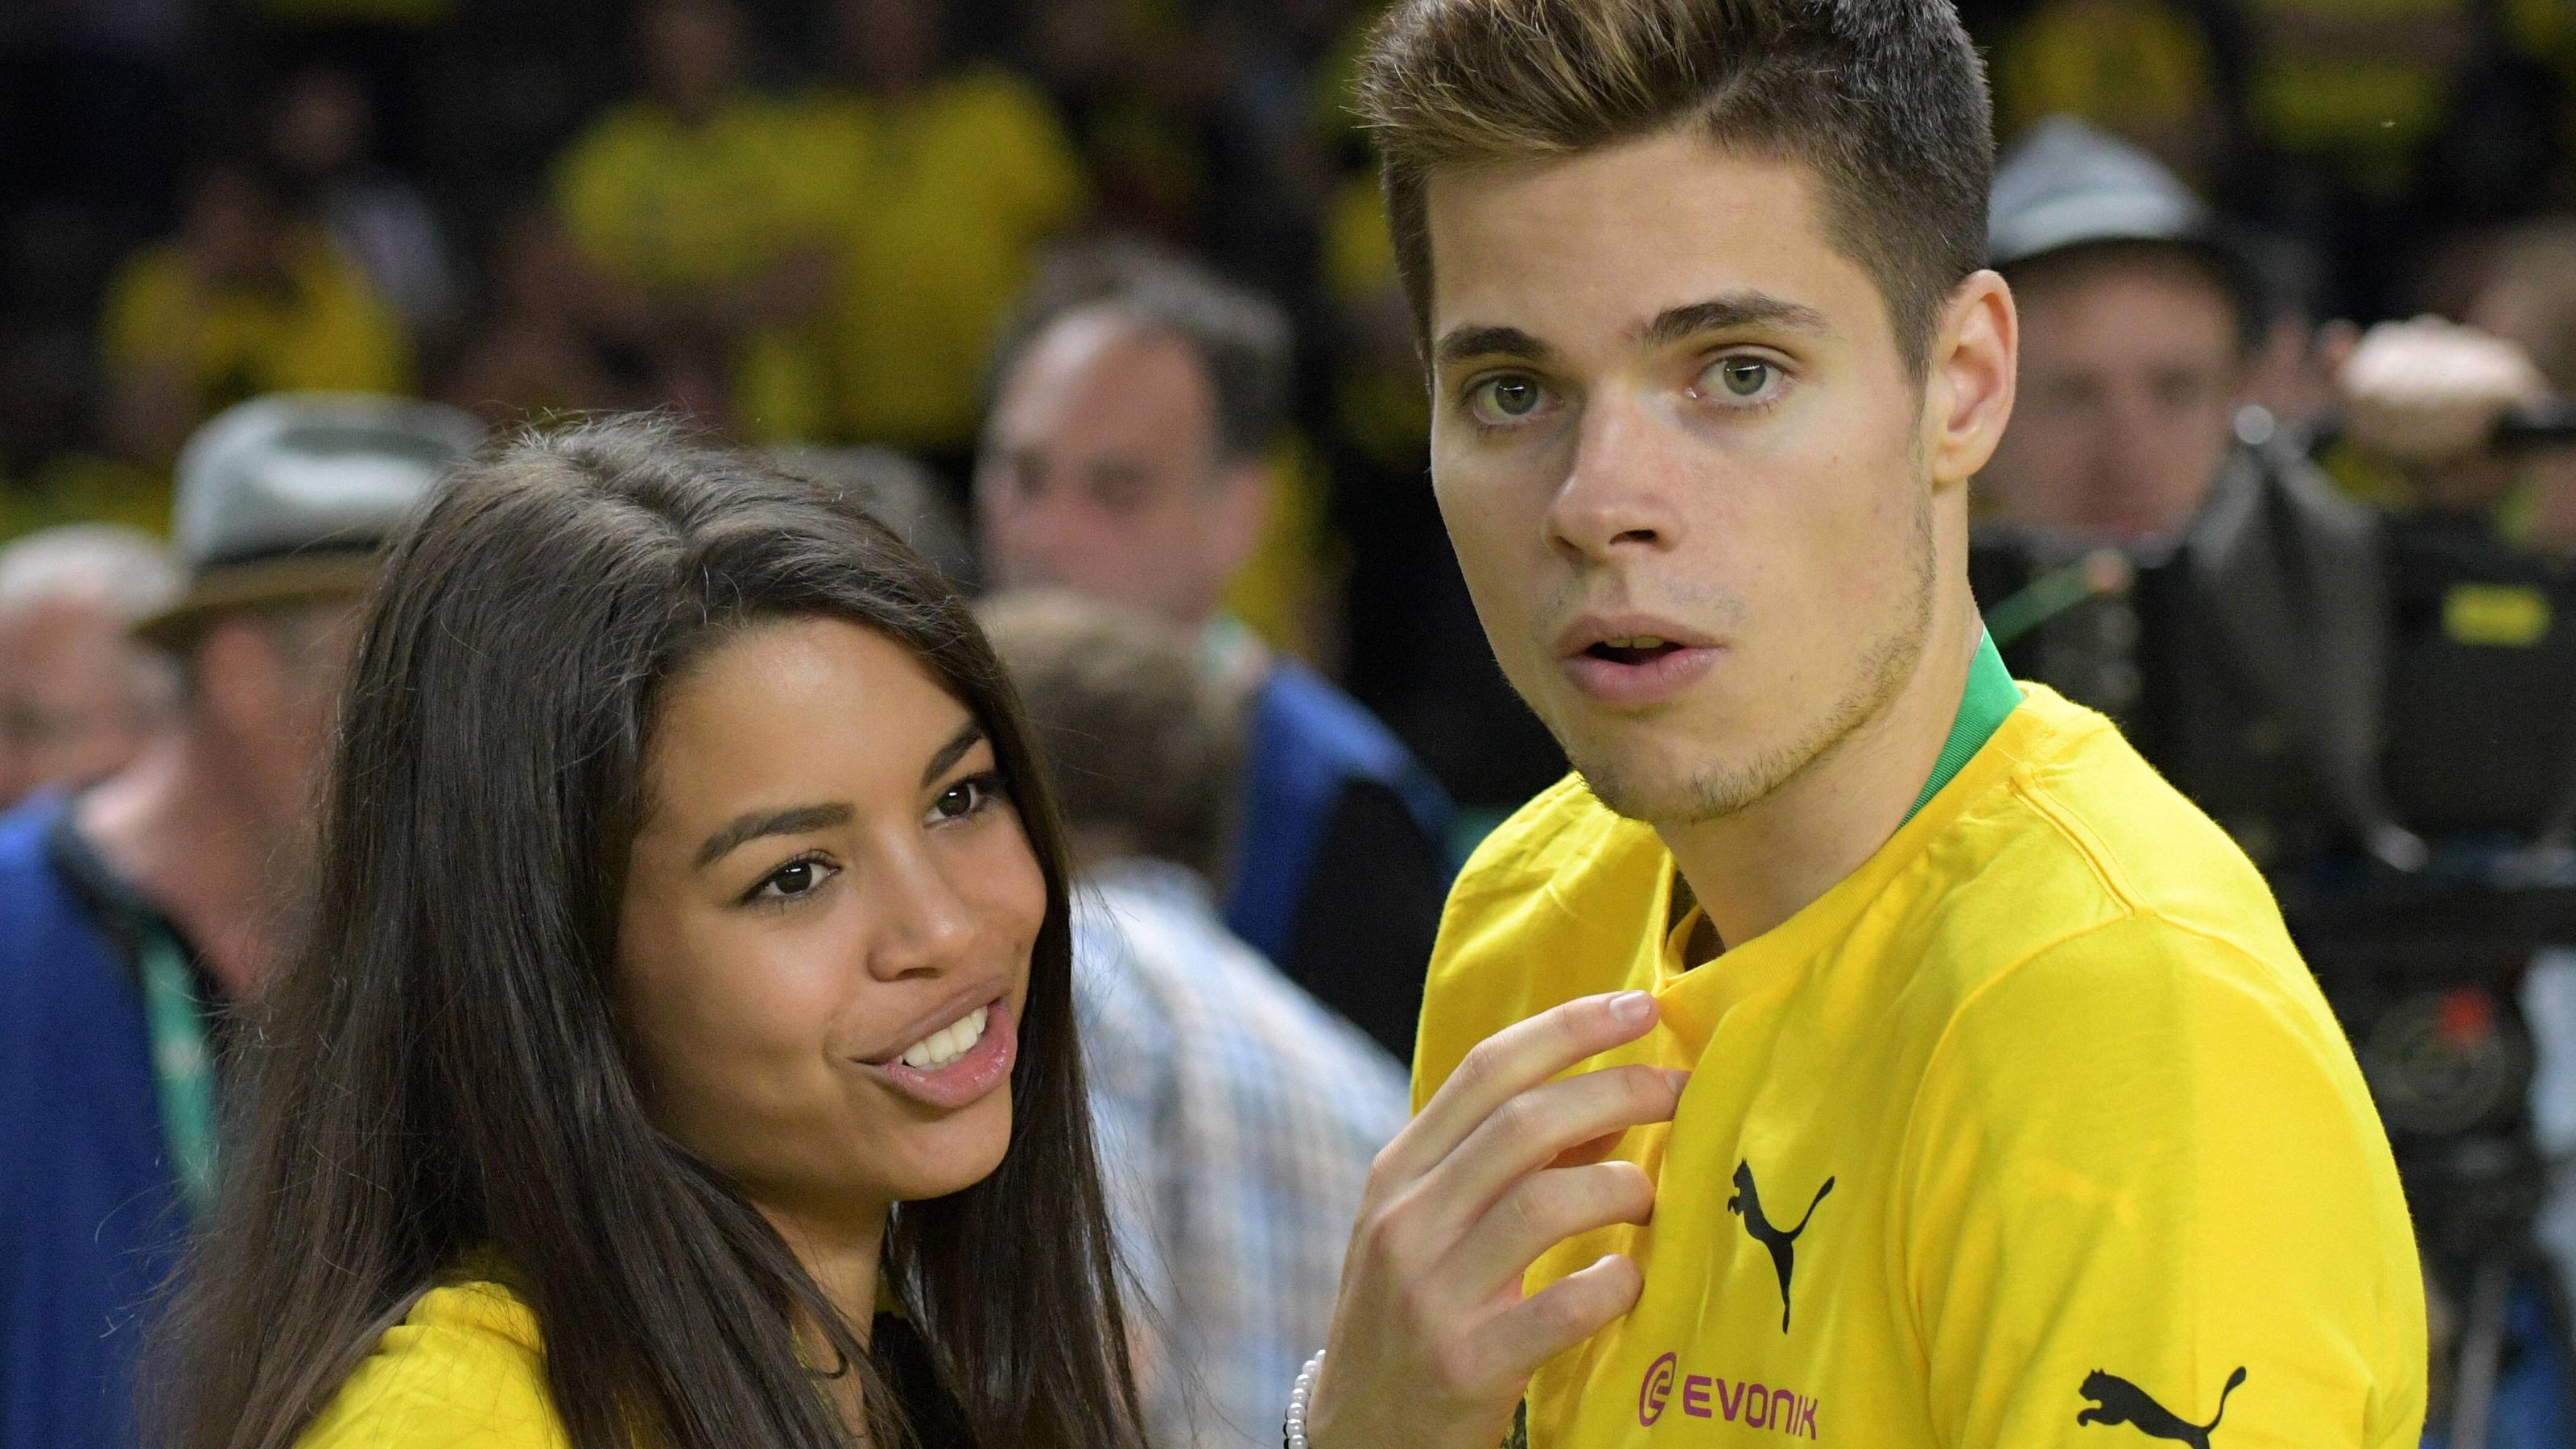 DFB-Pokalfinale Eintracht Frankfurt - Borussia Dortmund / 27.05.2017 / Julian Weigl (BVB) und seine Freundin Sarah Richmond. HMDFB Cup finals Eintracht Frankfurt Borussia Dortmund 27 05 2017 Julian Weigl Borussia and his Girlfriend Sarah Richmond HM